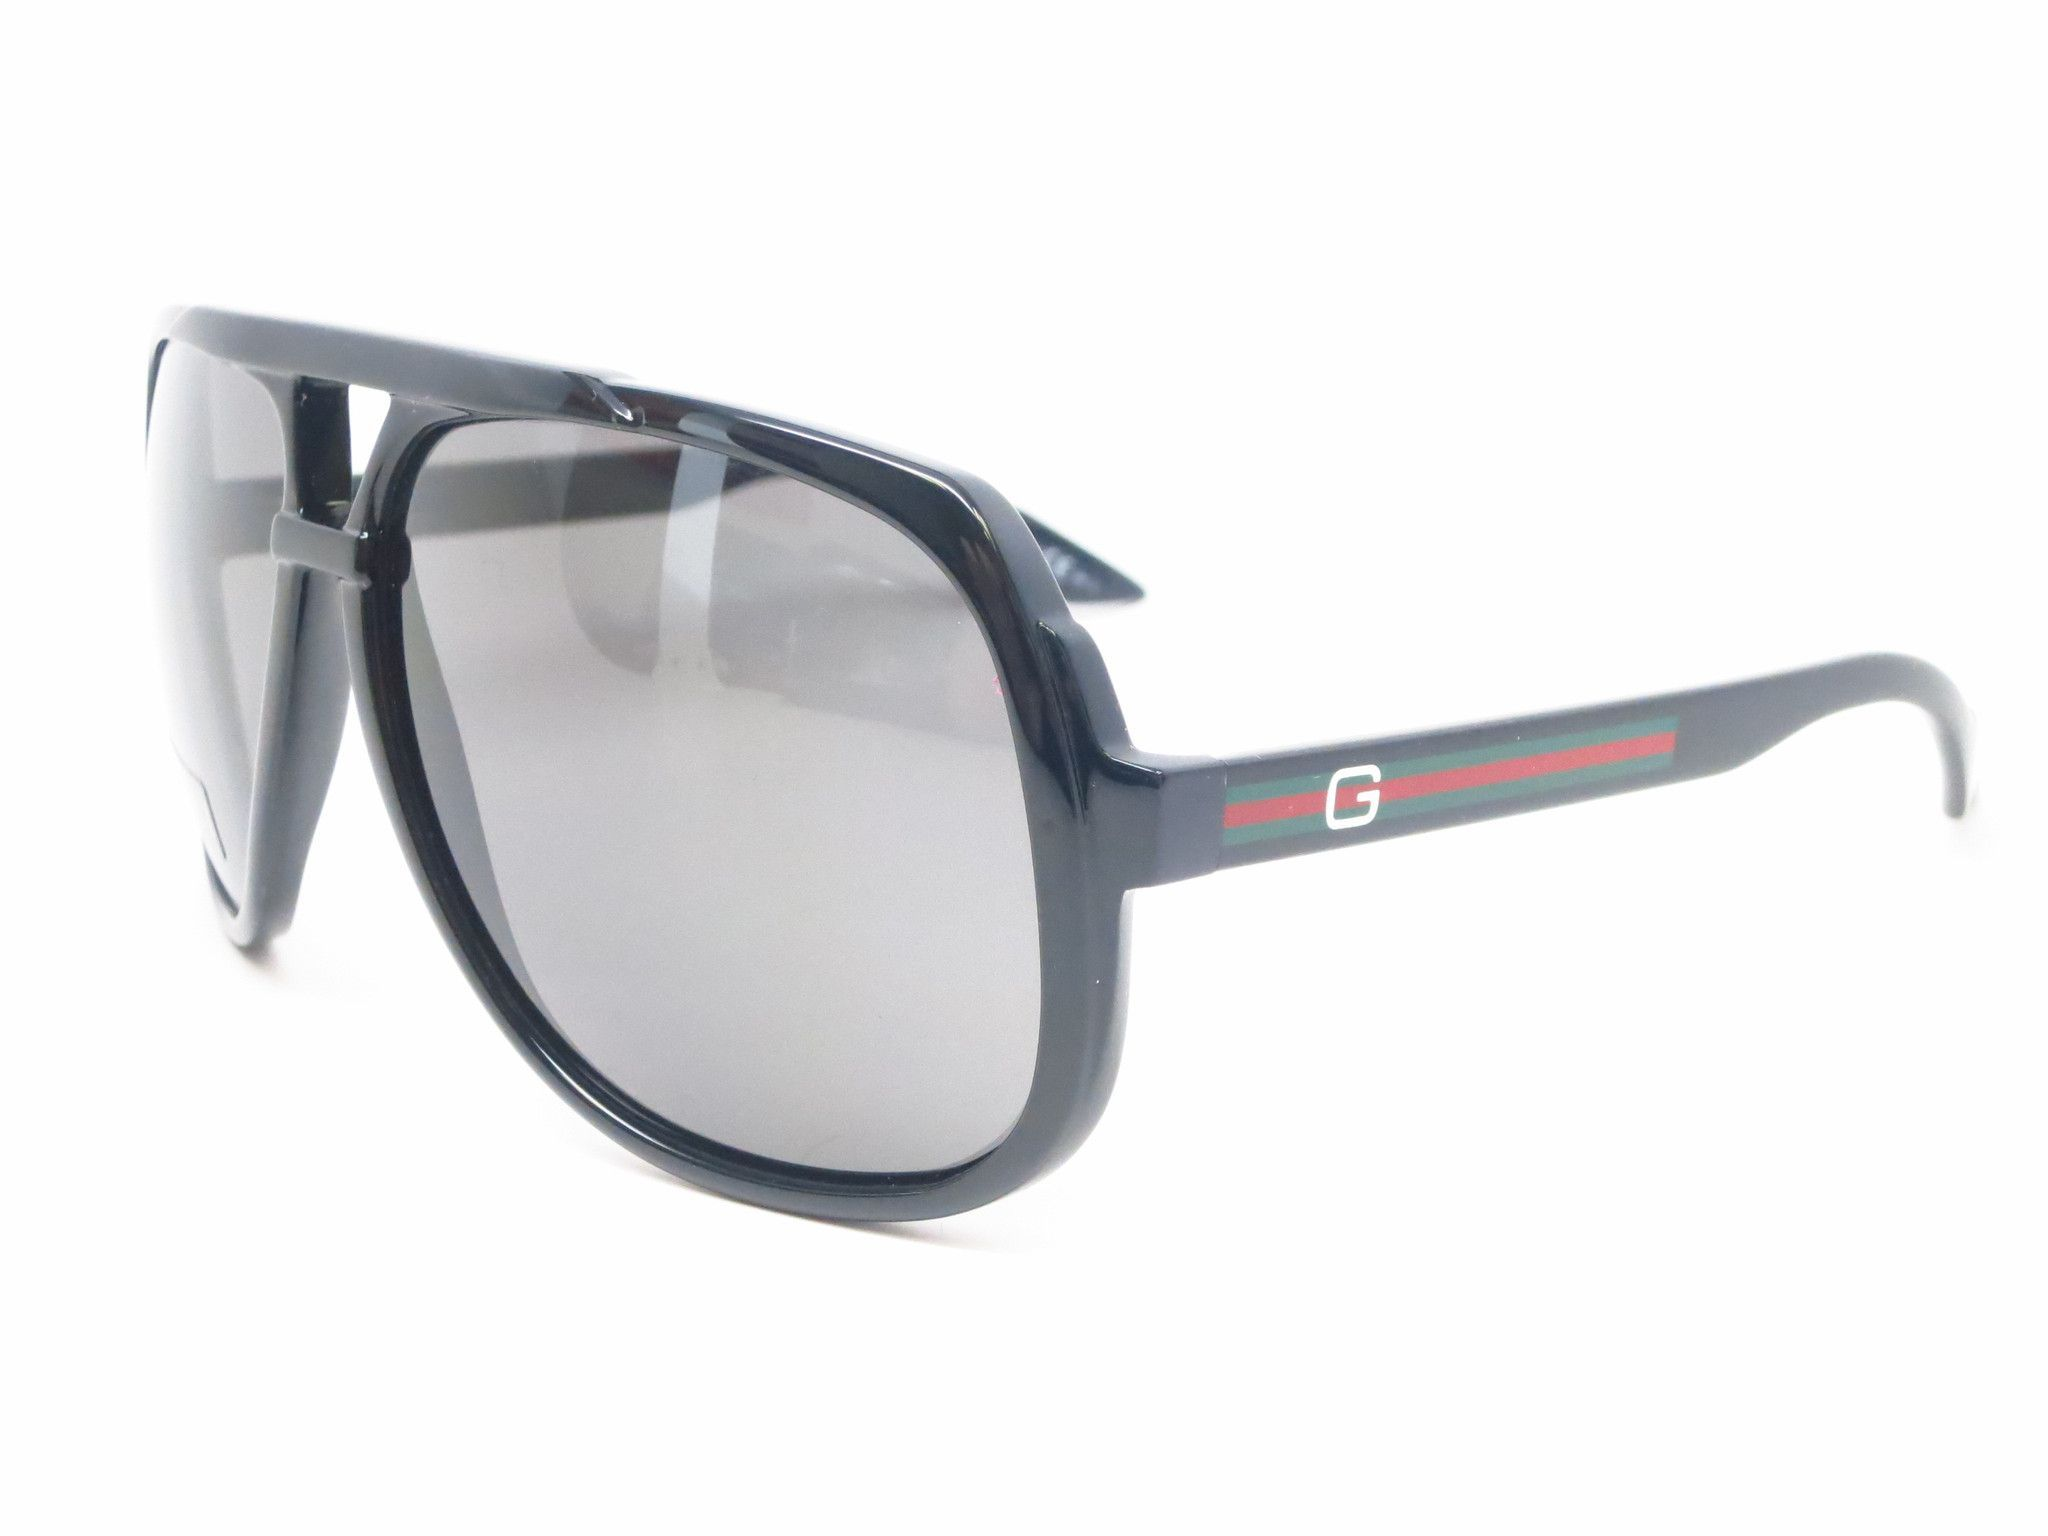 aab6efaa95067 Gucci GG 1622 GG1622 S Black D28R6 Sunglasses   All Things Mens ...